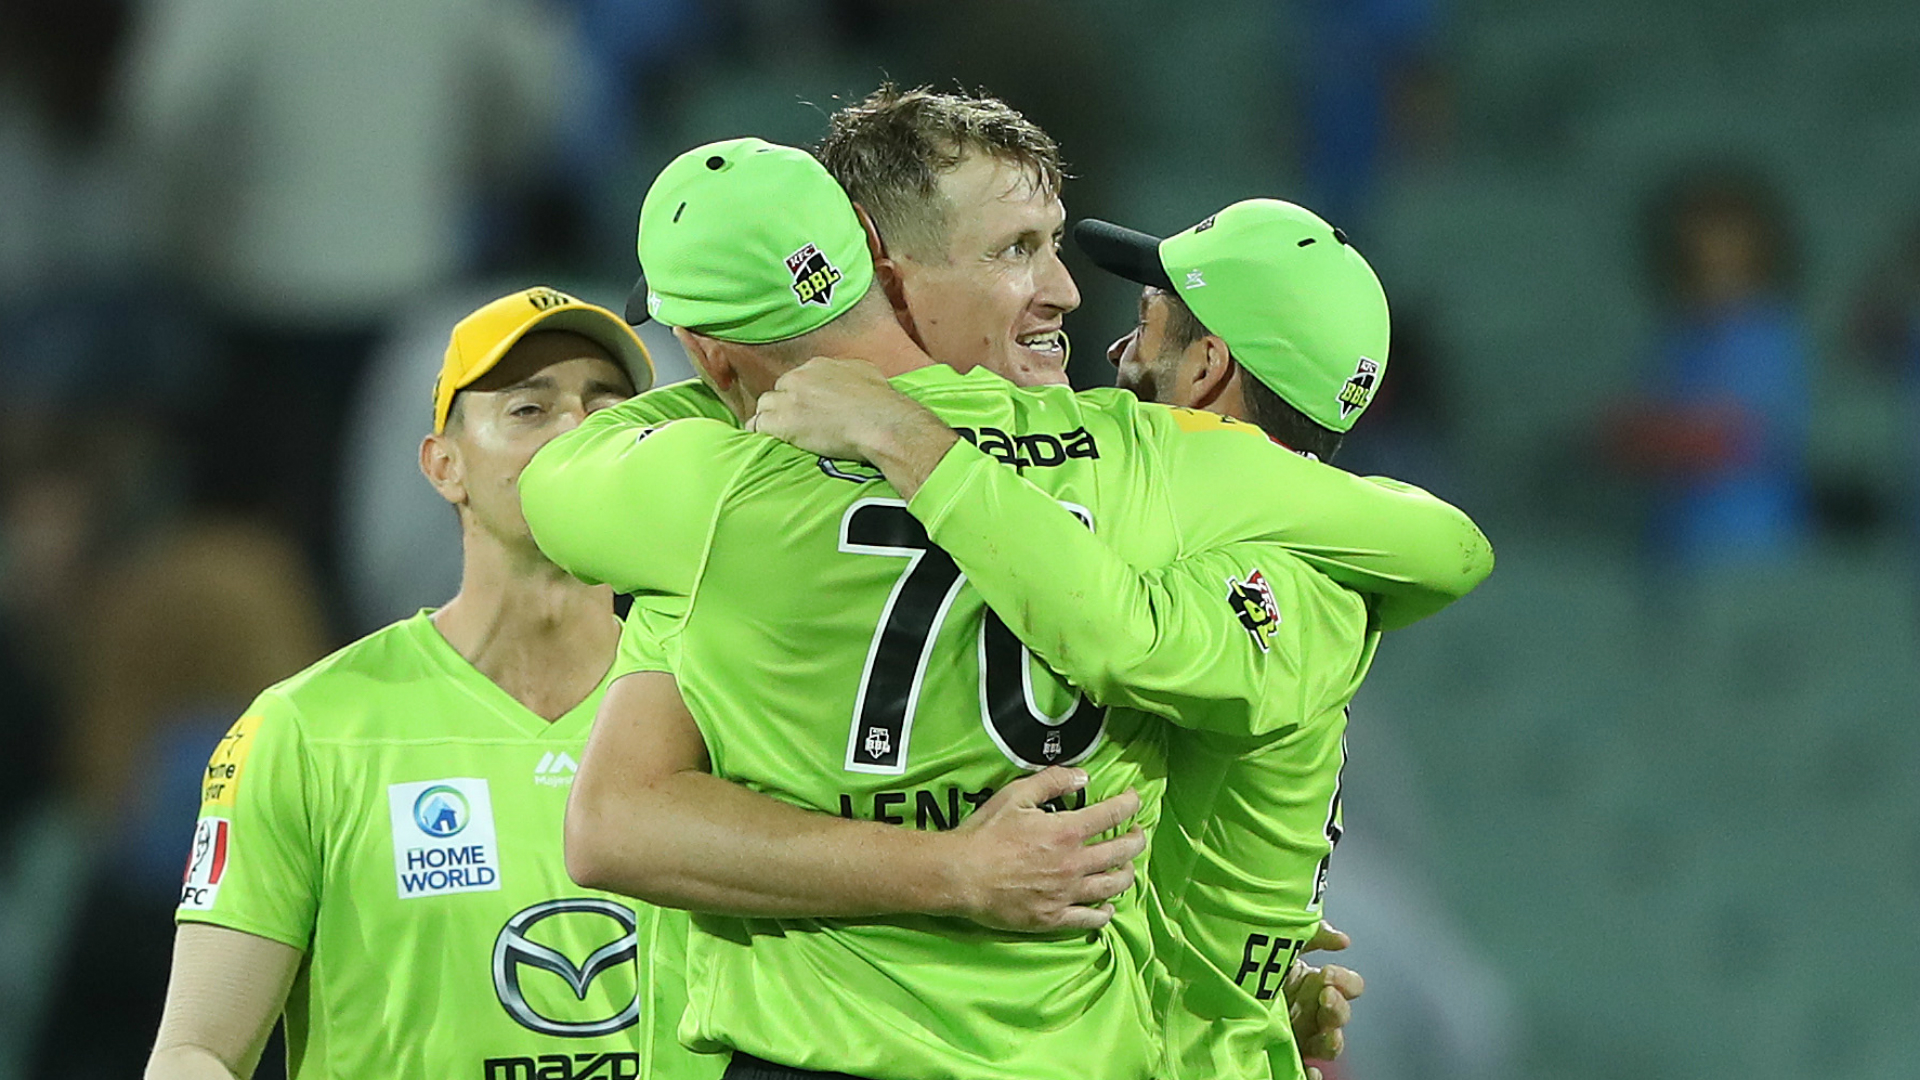 Strikers wilt as Thunder prevail under pressure to keep BBL dreams alive